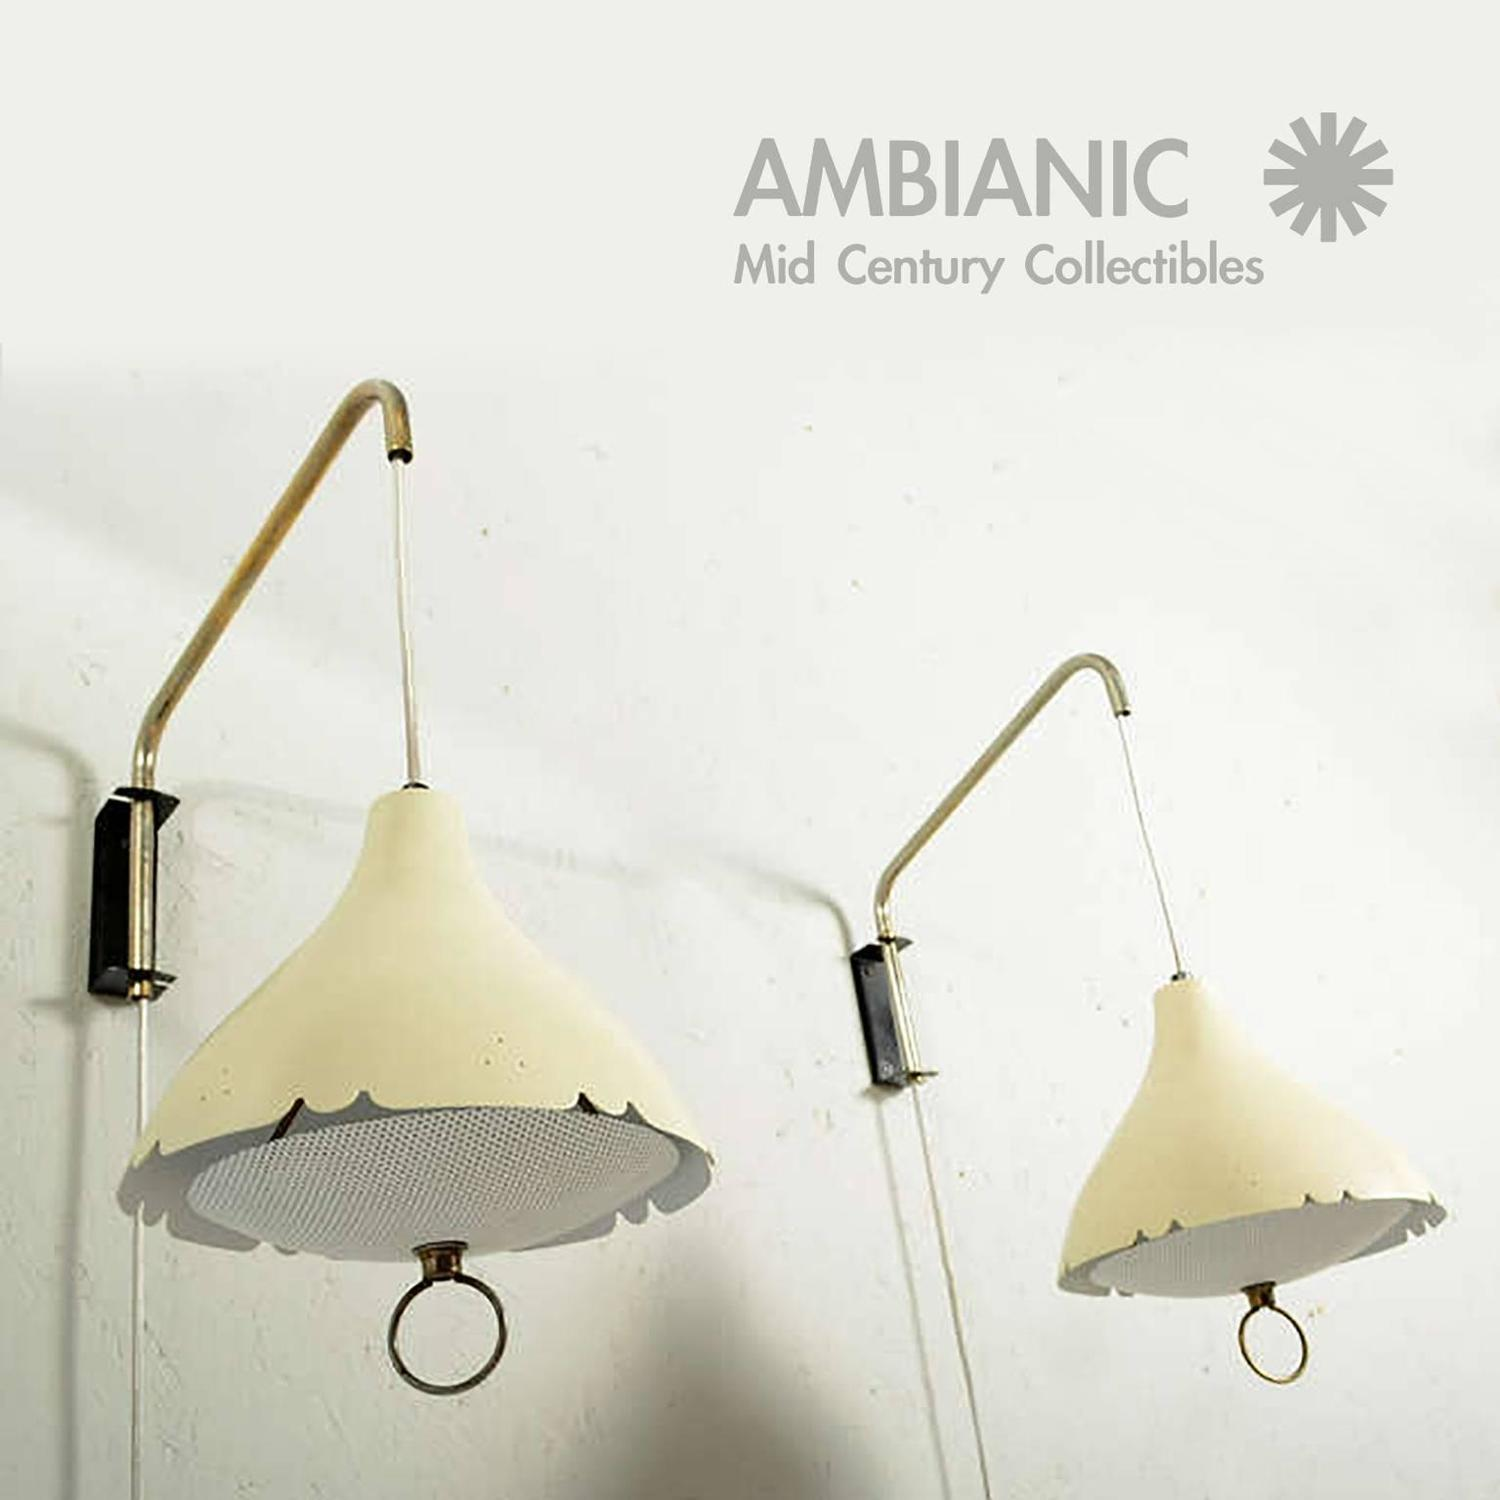 Mid Century Modern Pair of Wall Sconces After Lightolier For Sale at 1stdibs